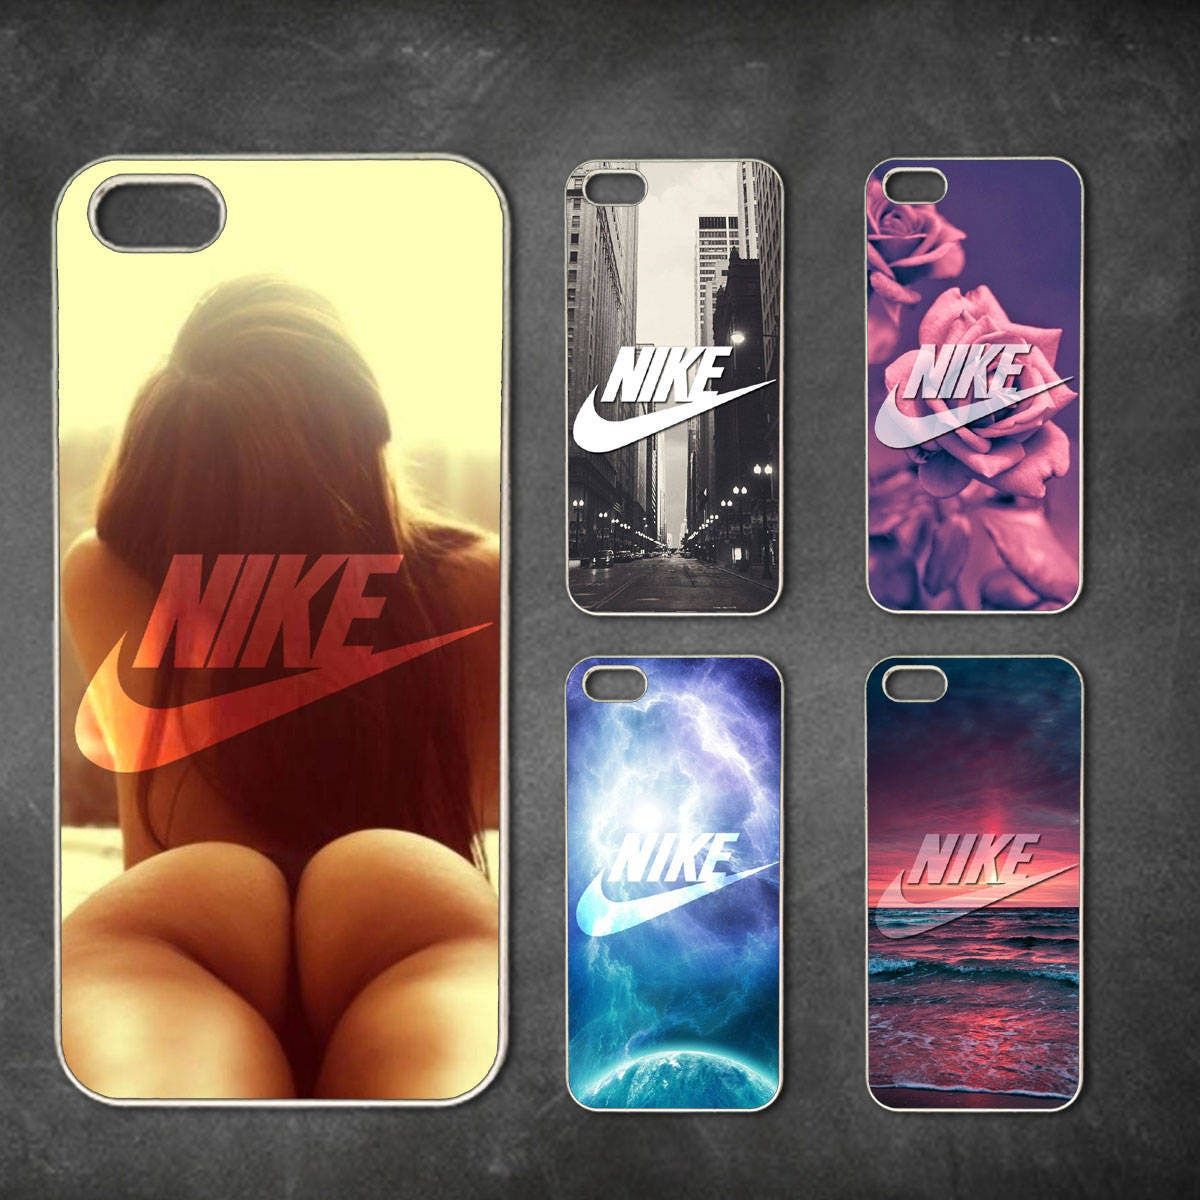 32 kinds Nike galaxy note 8 s8 case s8 plus case s7 case